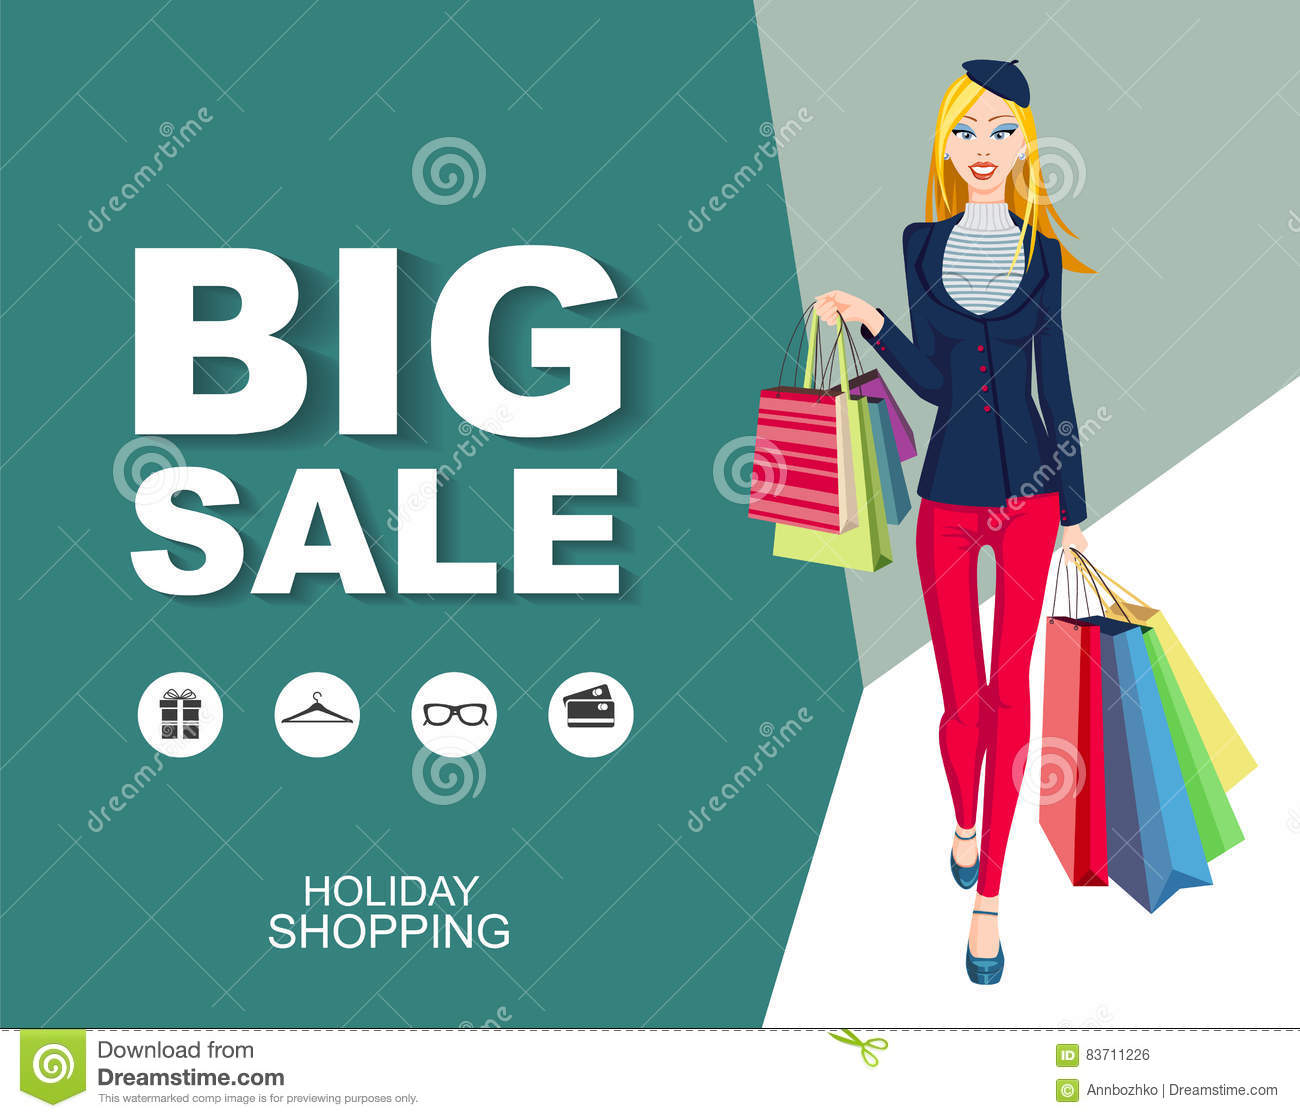 Poster Big Sale With Icons. Shopping Wonan Model. Stock Vector